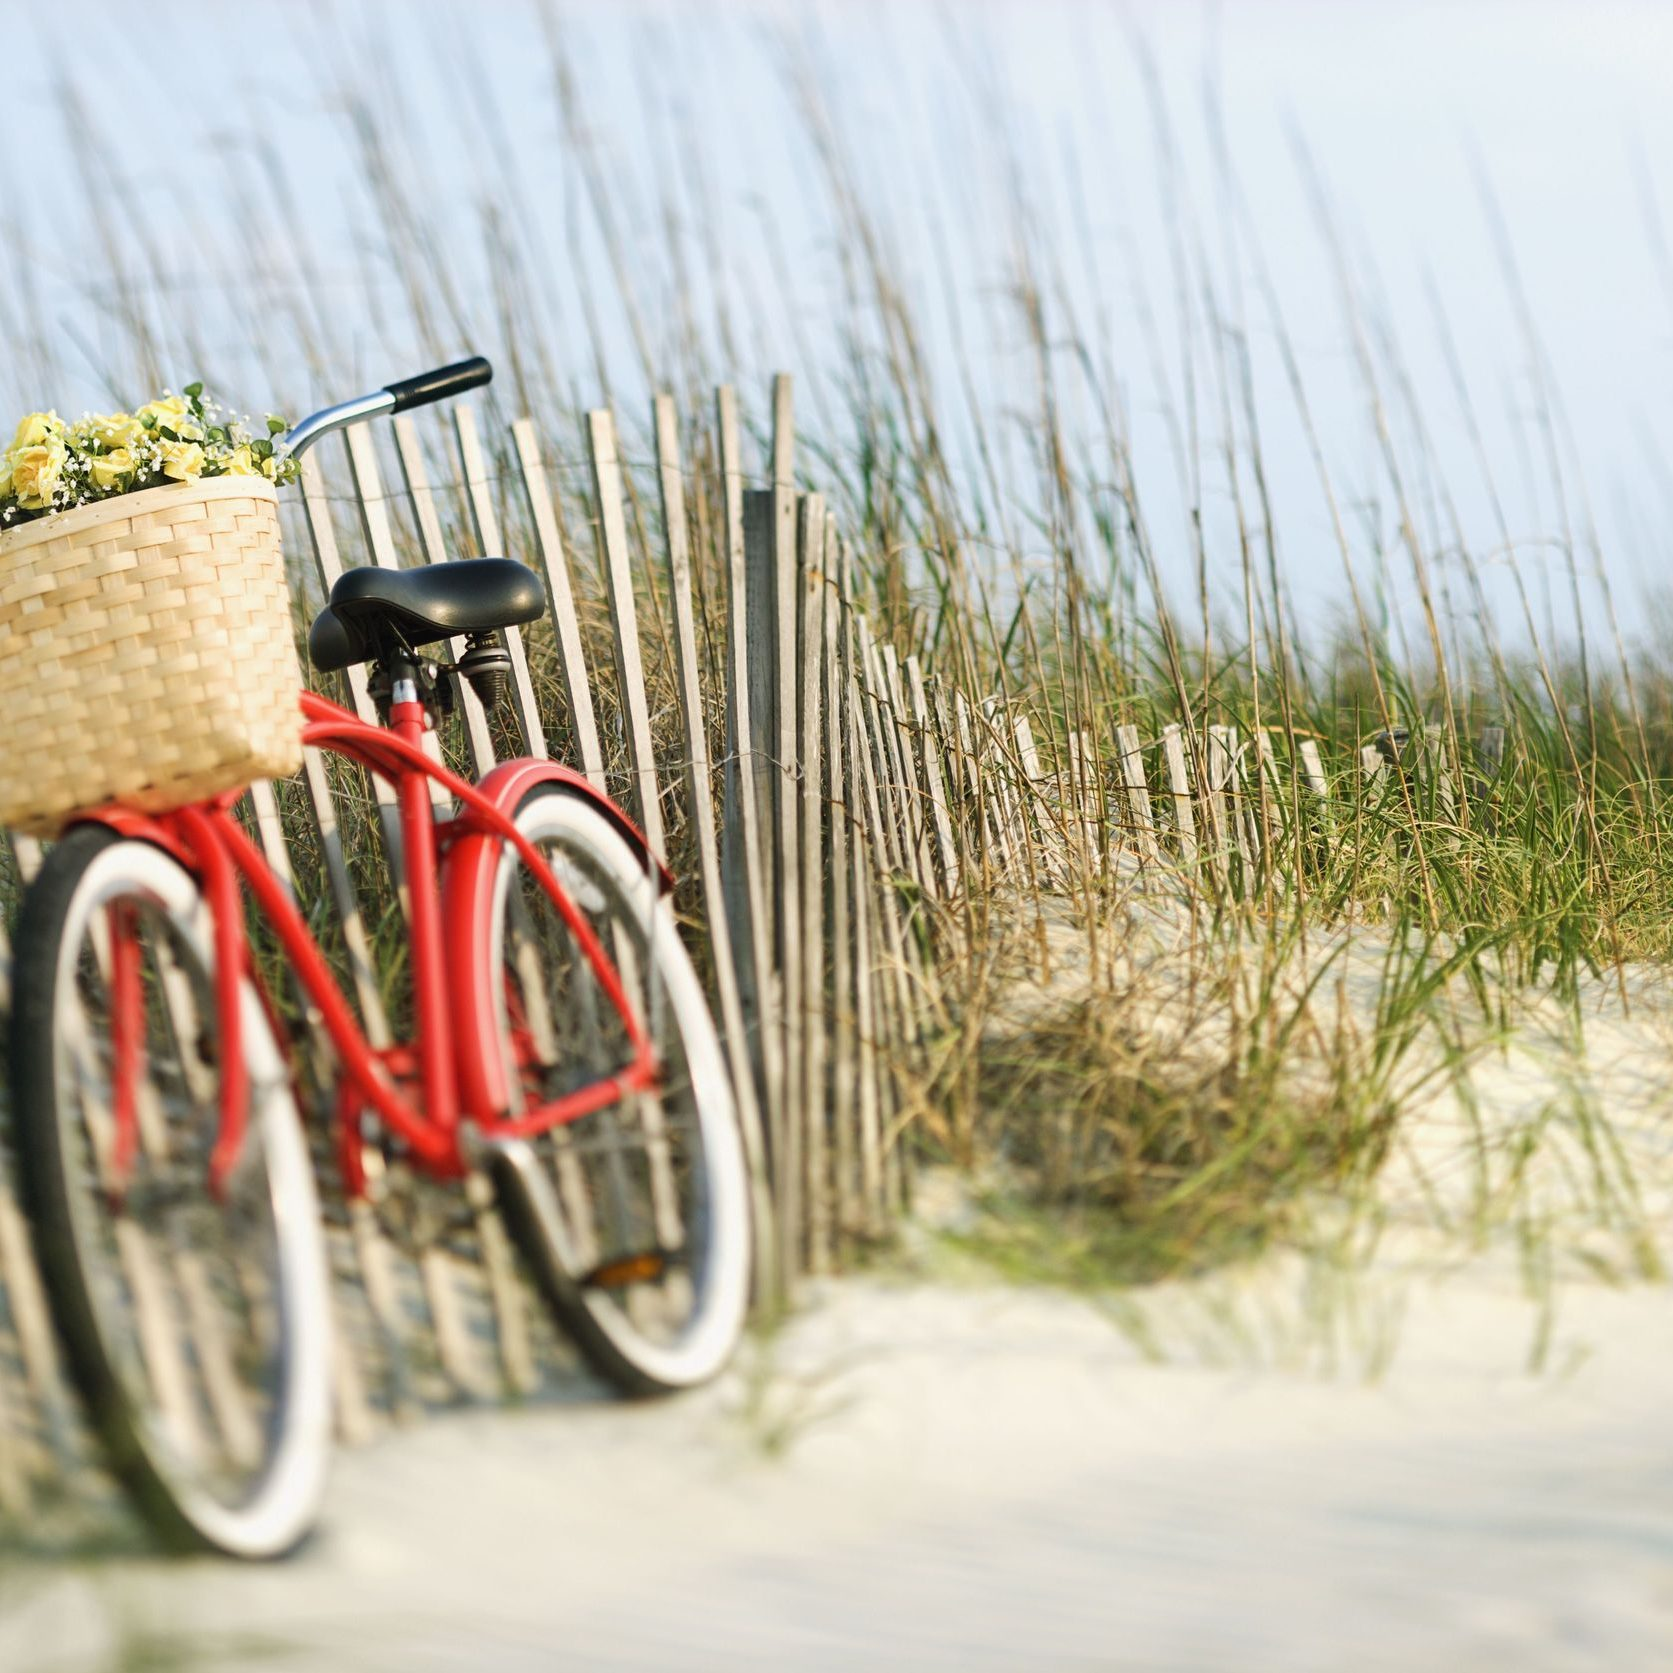 2231820 - red vintage bicycle with basket and flowers lleaning against wooden fence at beach.